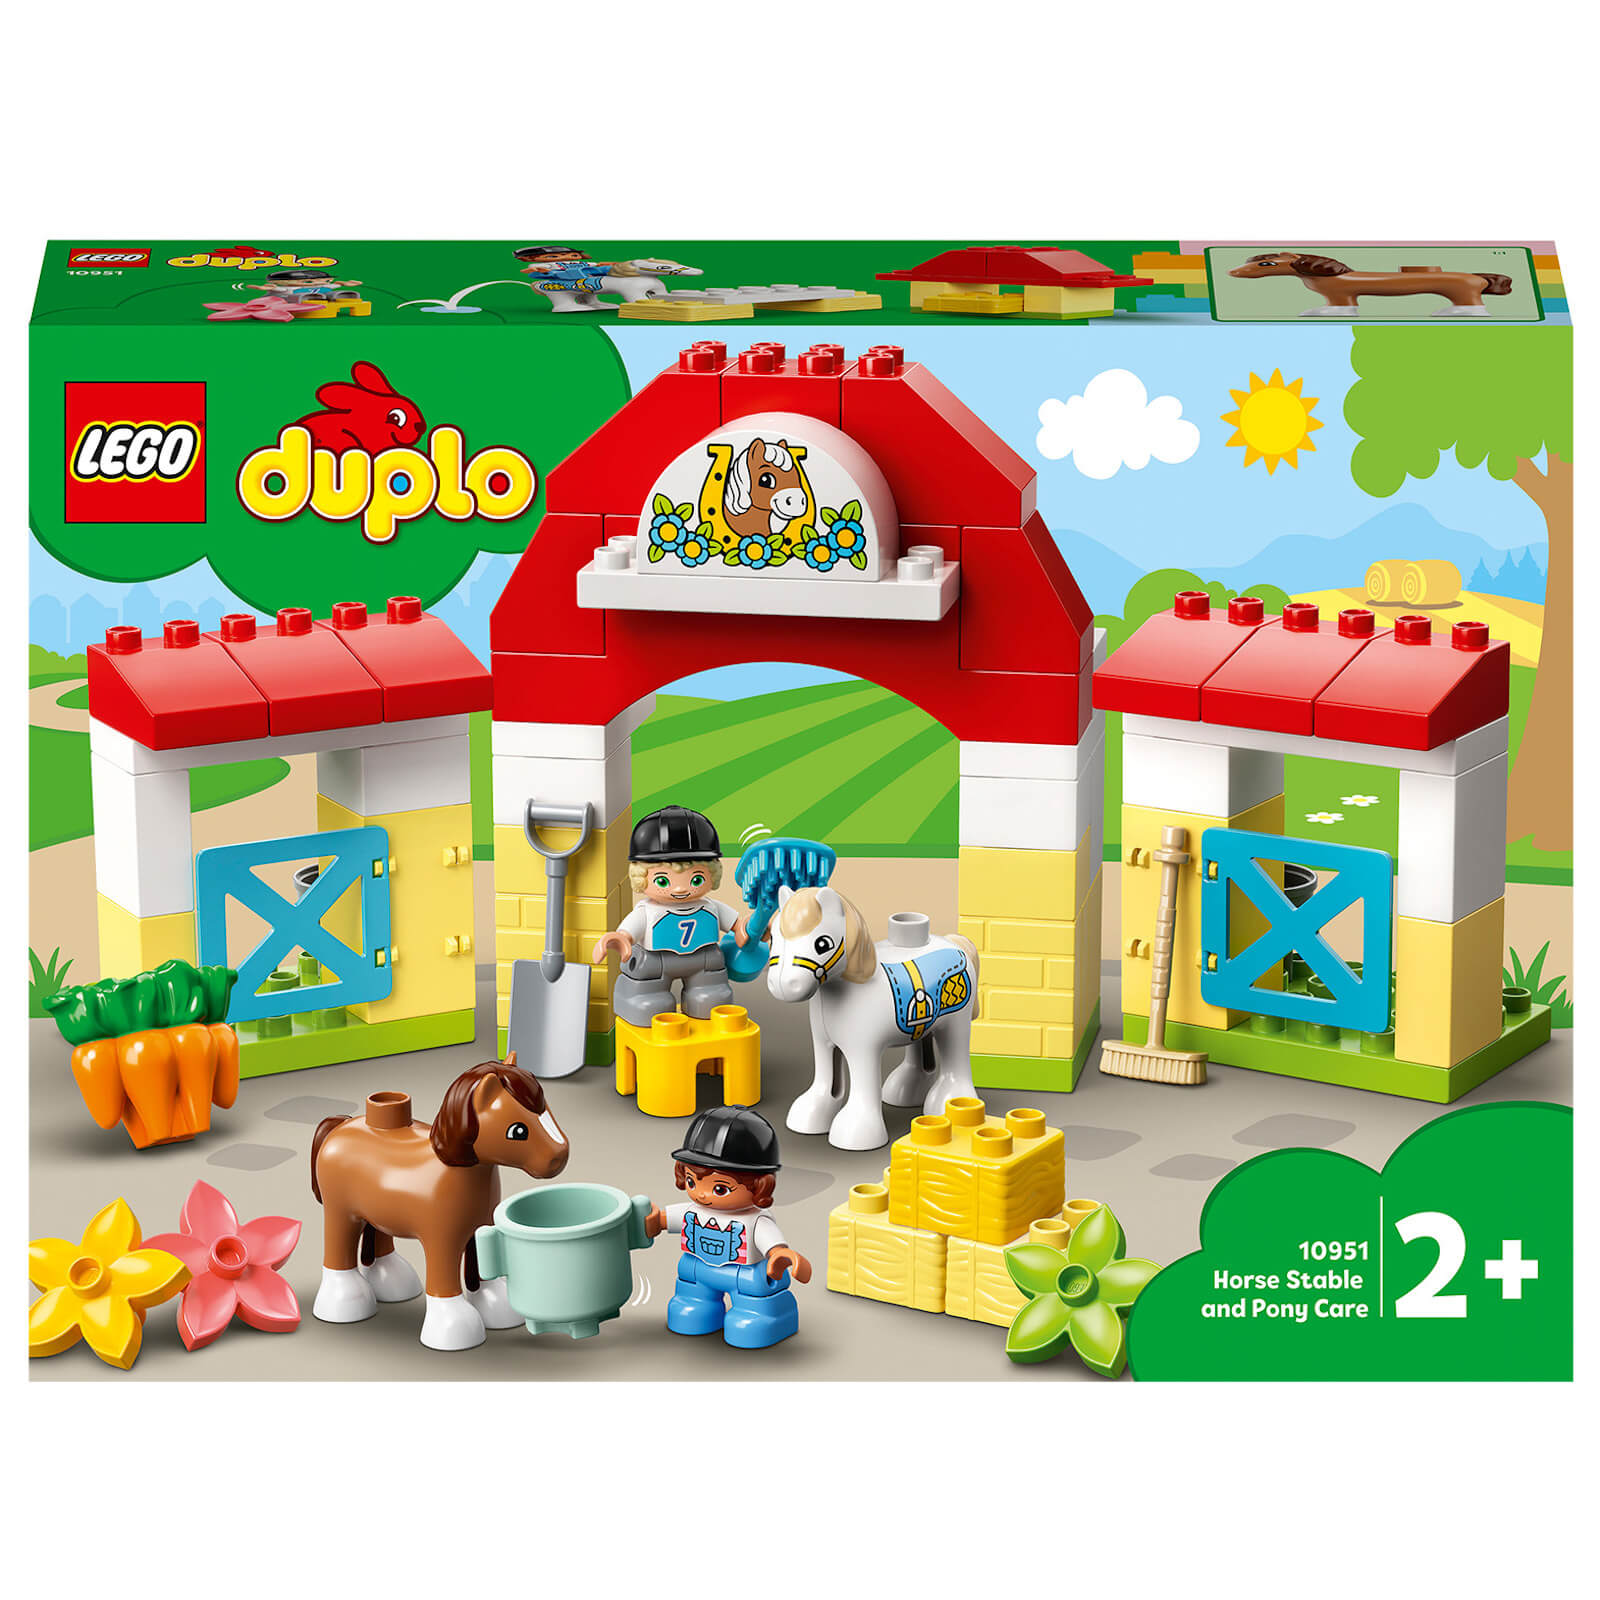 Image of Lego Duplo Town Horse Stable and Pony Care Construction Set